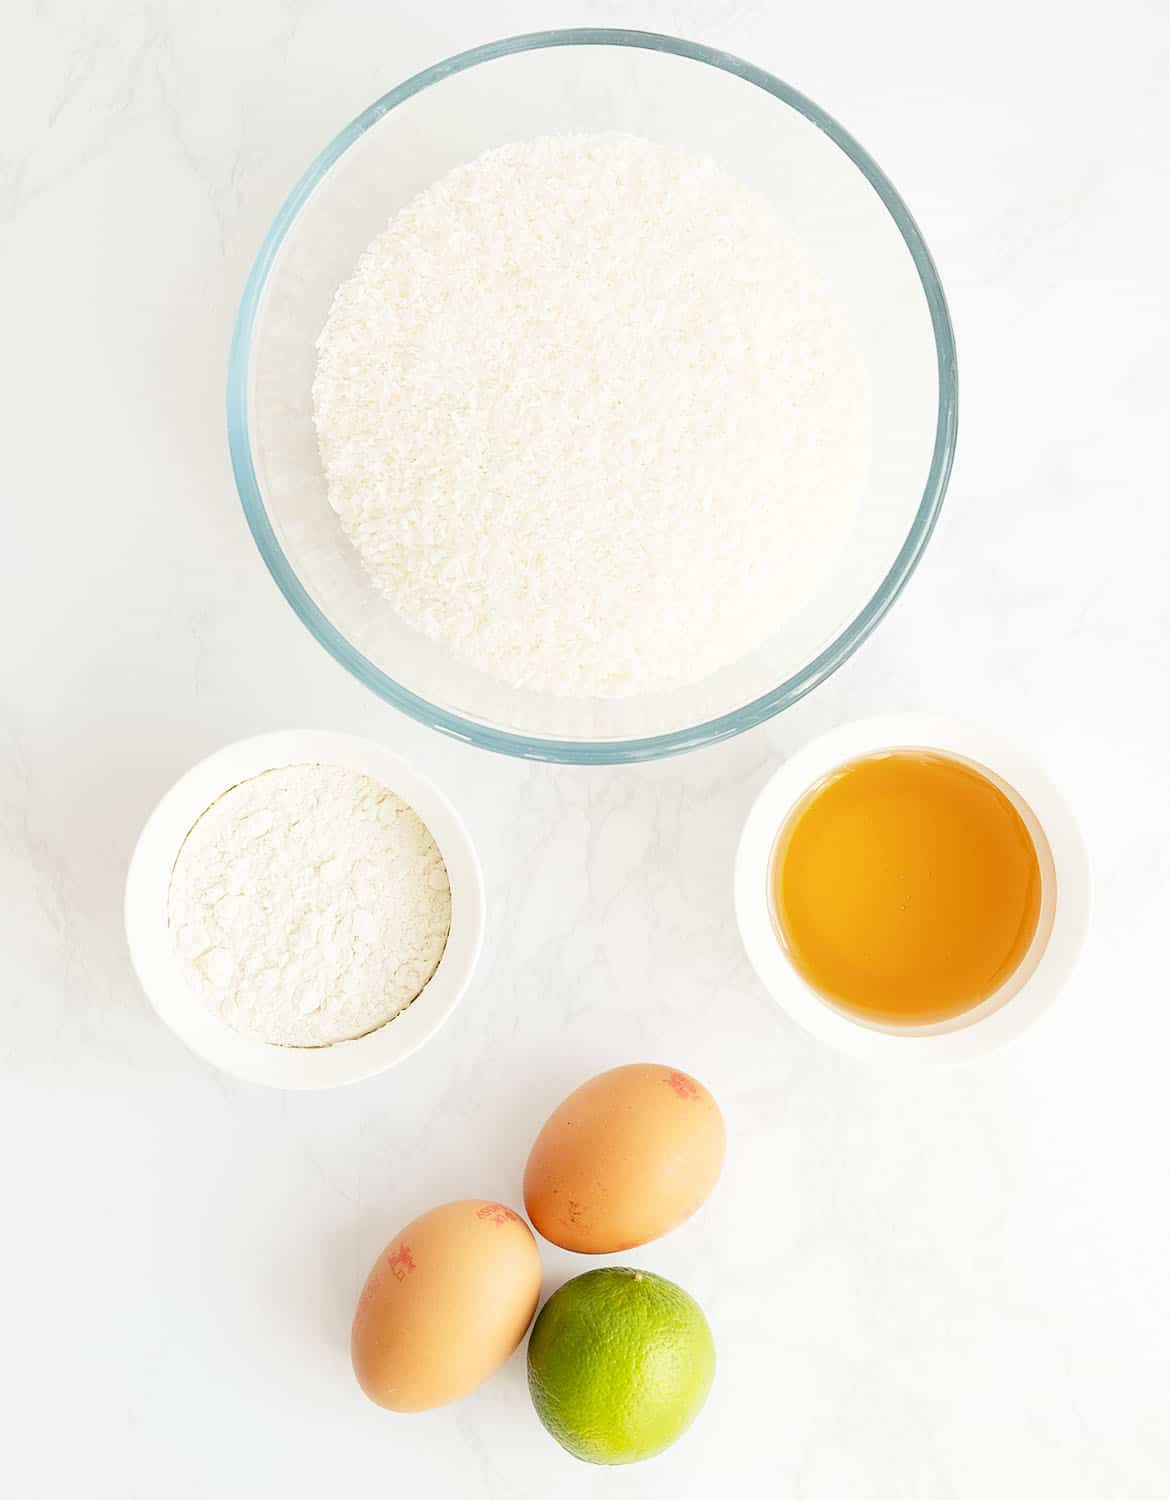 The ingredients to make these coconut cookies are arranged over a white background.